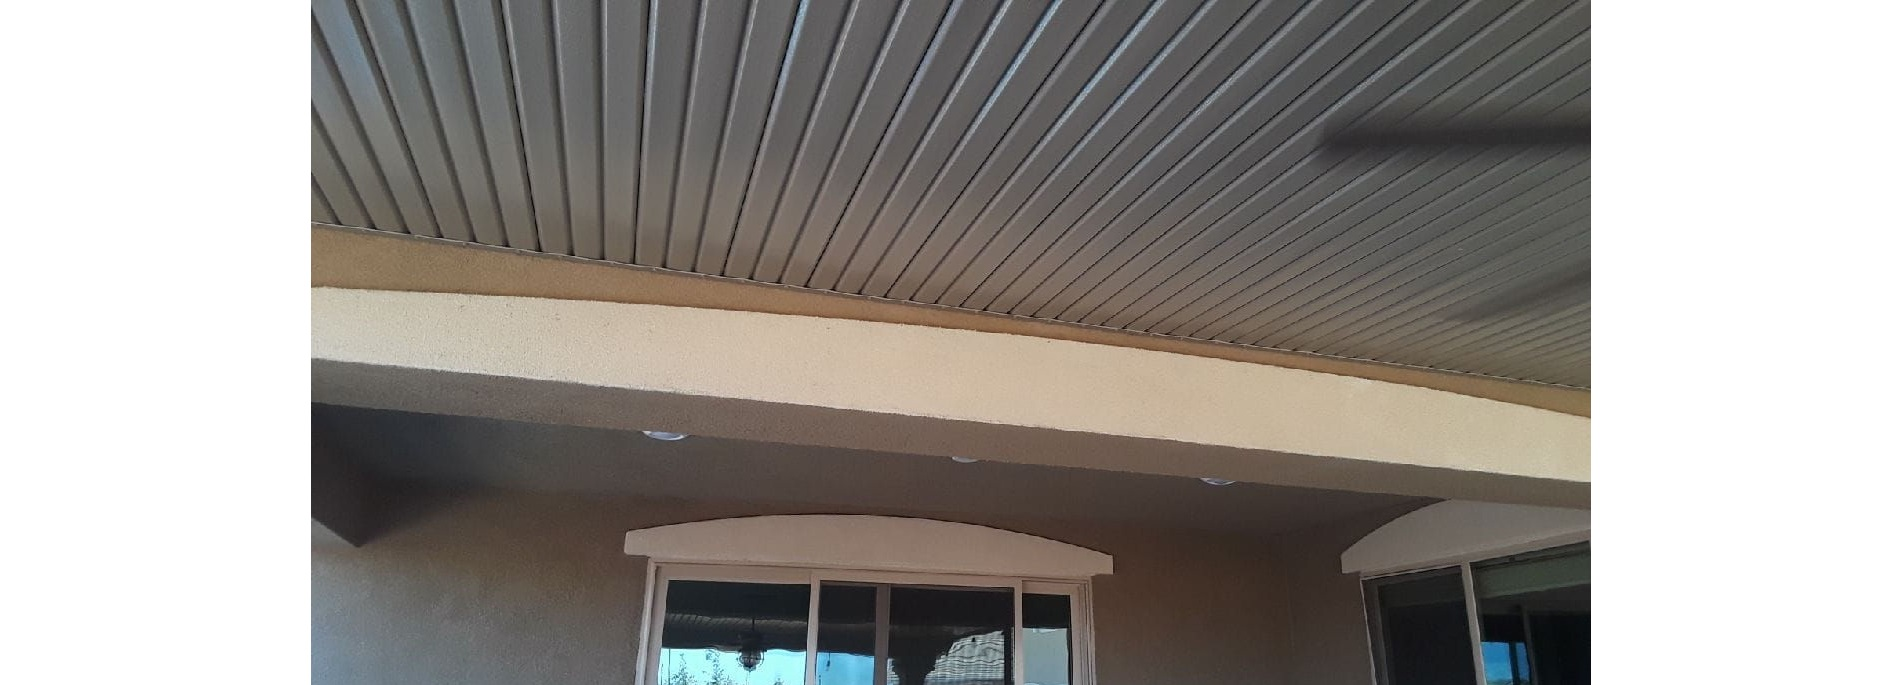 western sky patio covers citrus heights ca